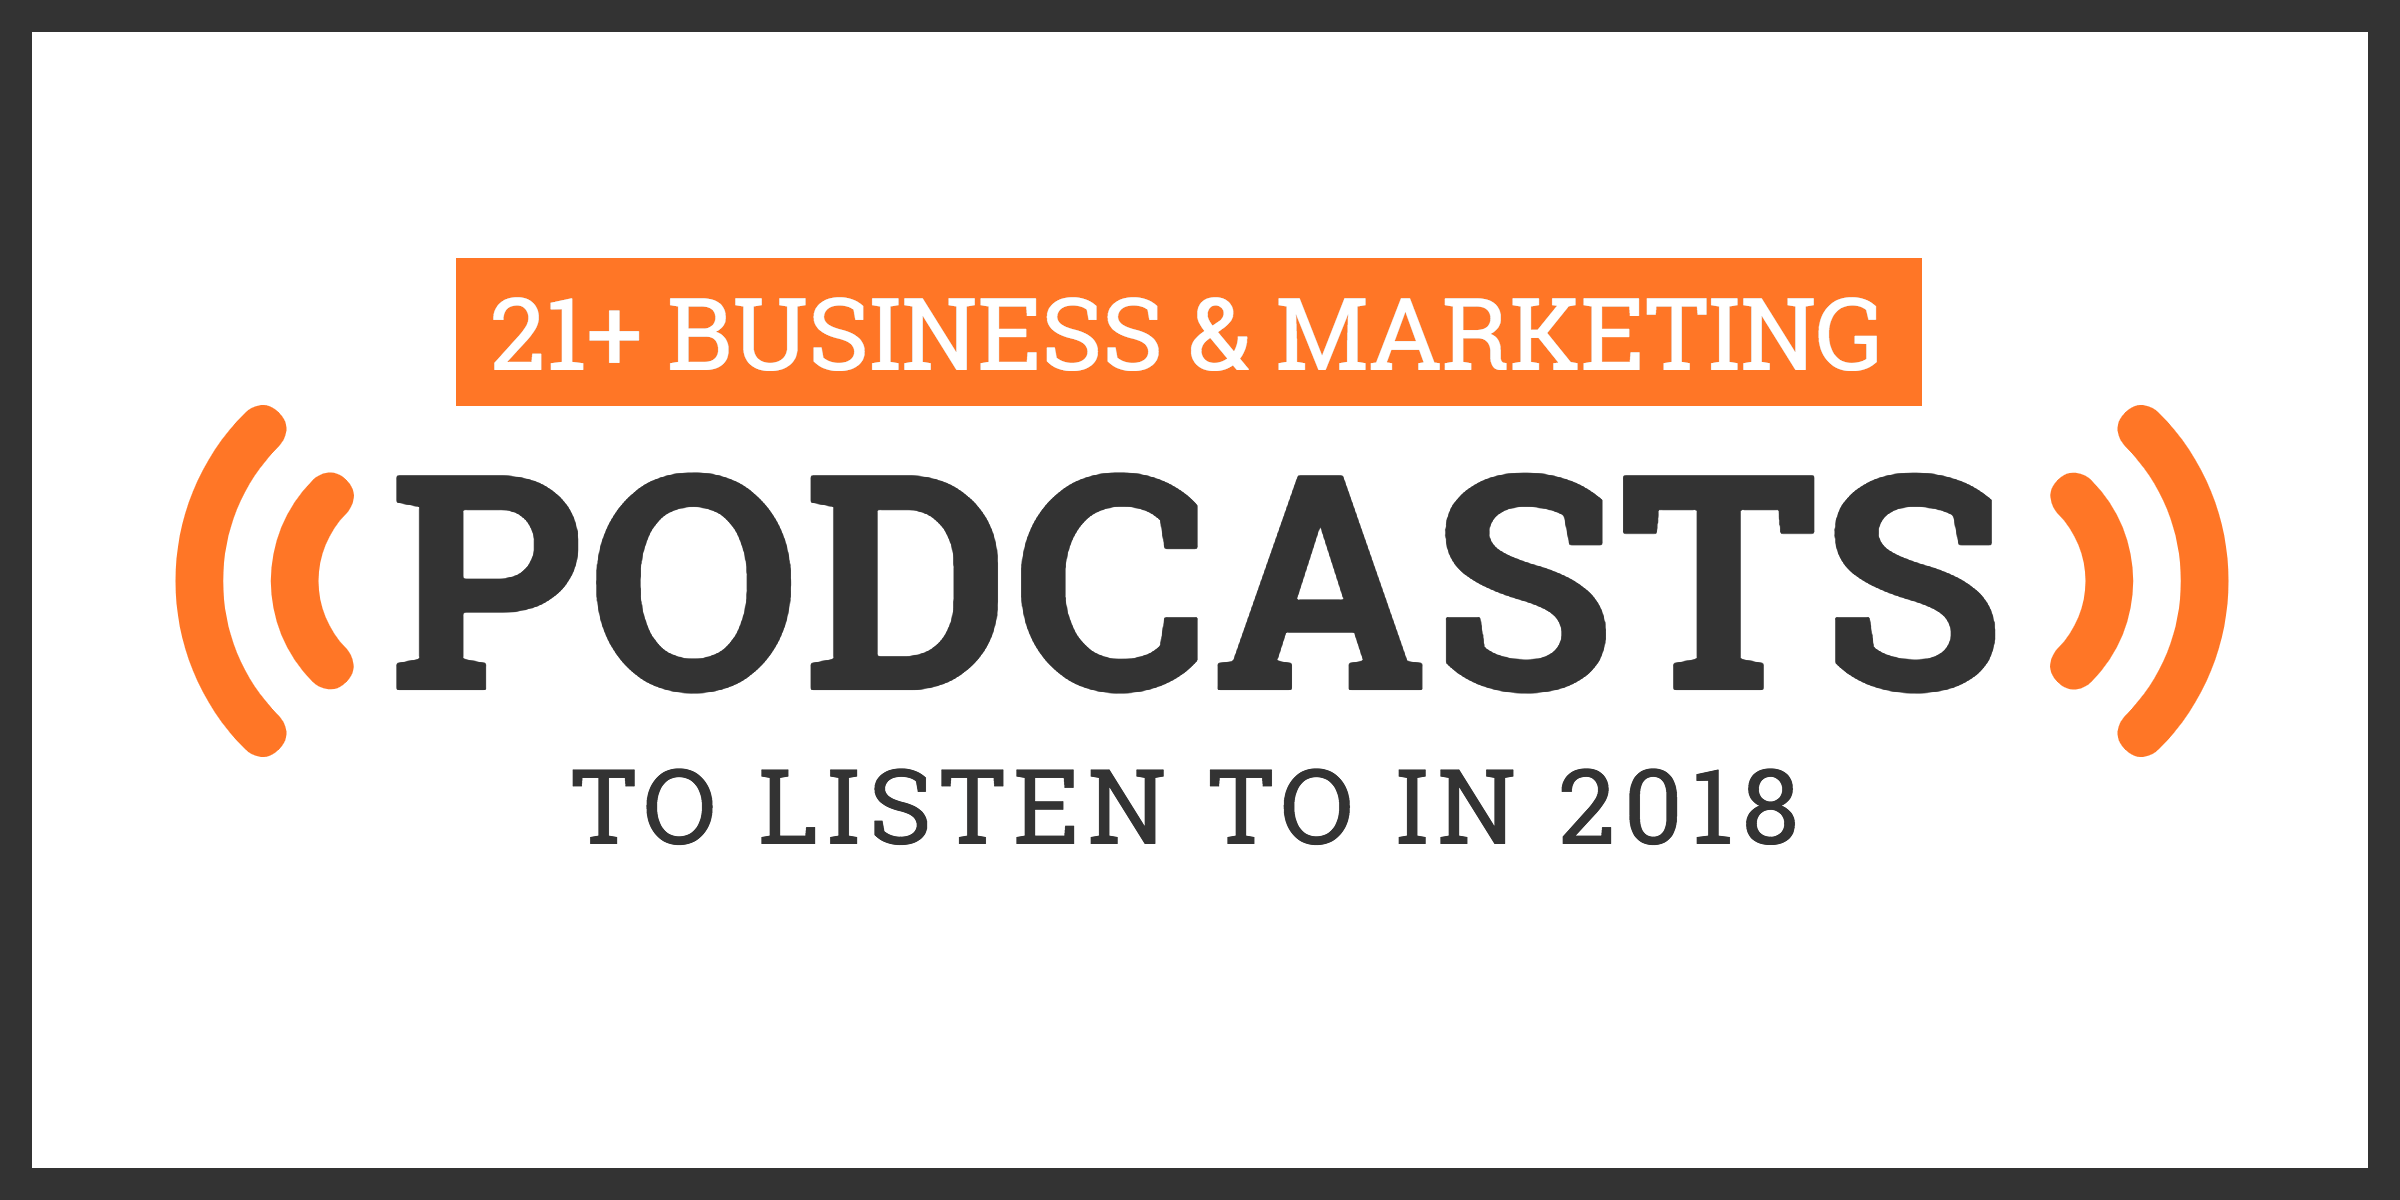 Business & marketing podcasts